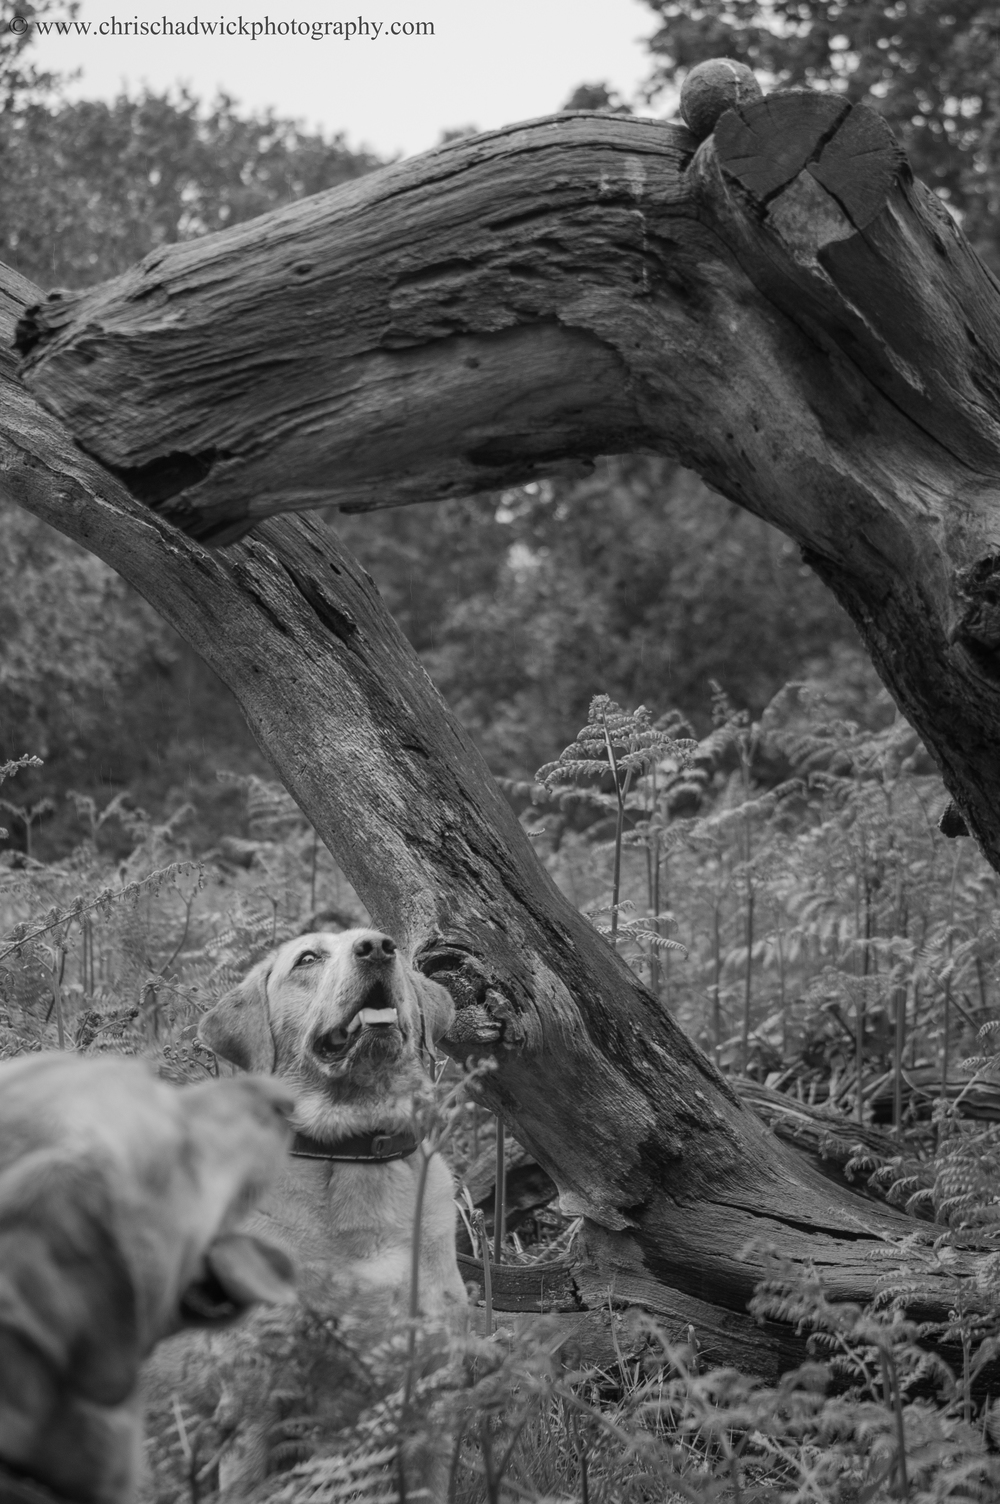 The image above contains an example of the eye-line. The subject appears to be the in-focus dog at the rear, but if we follow the gaze of both dogs we see the tennis ball perched on top of the tree. How on earth did it get there?